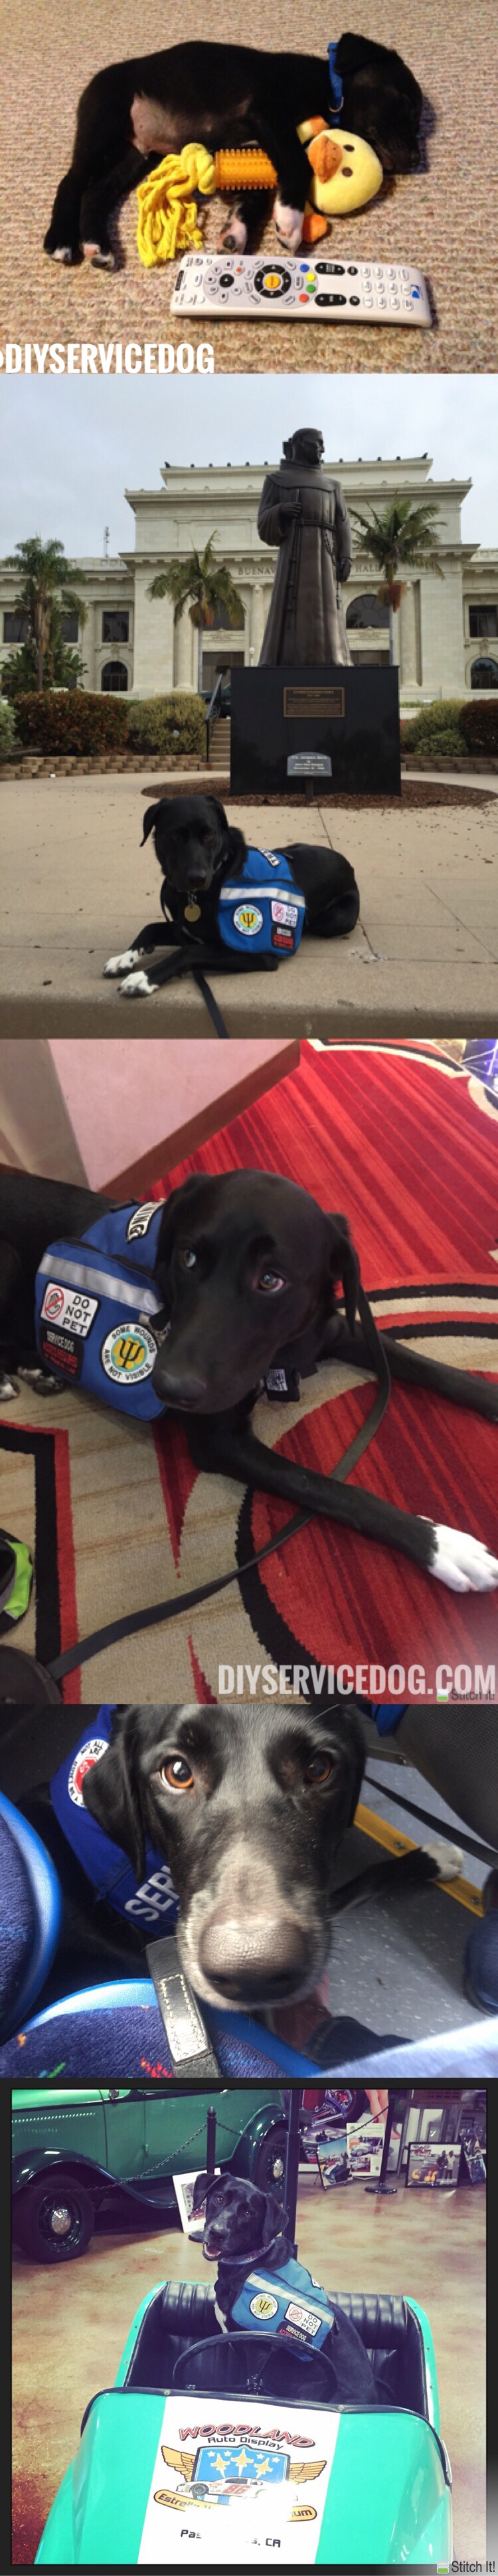 Pin by Jennifer Milligan on Dogs at work Service dog